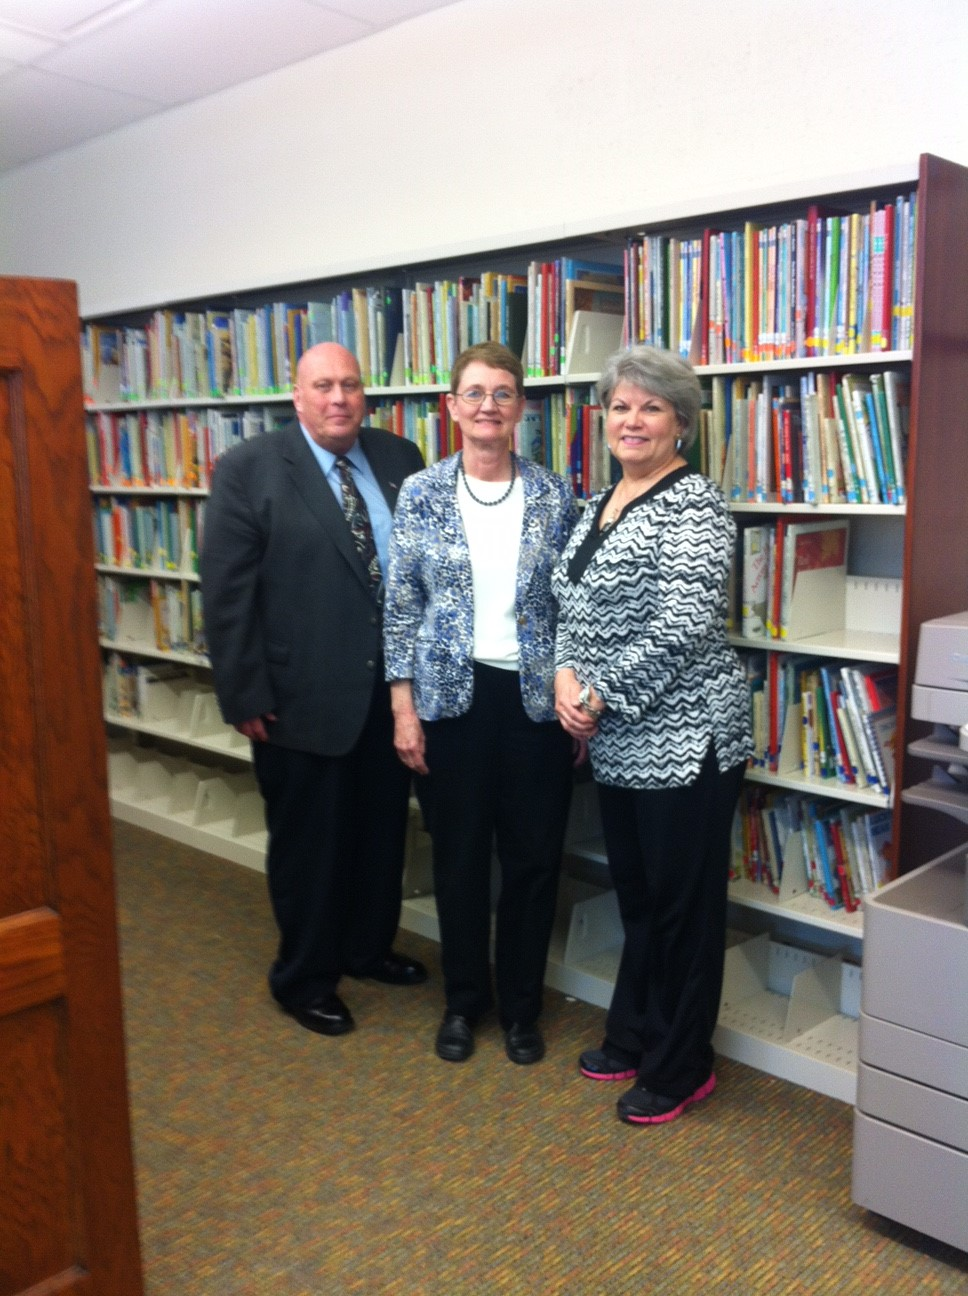 Mr. David Moore, Mrs. Deanna Tribe and Mrs. Nell Saunders